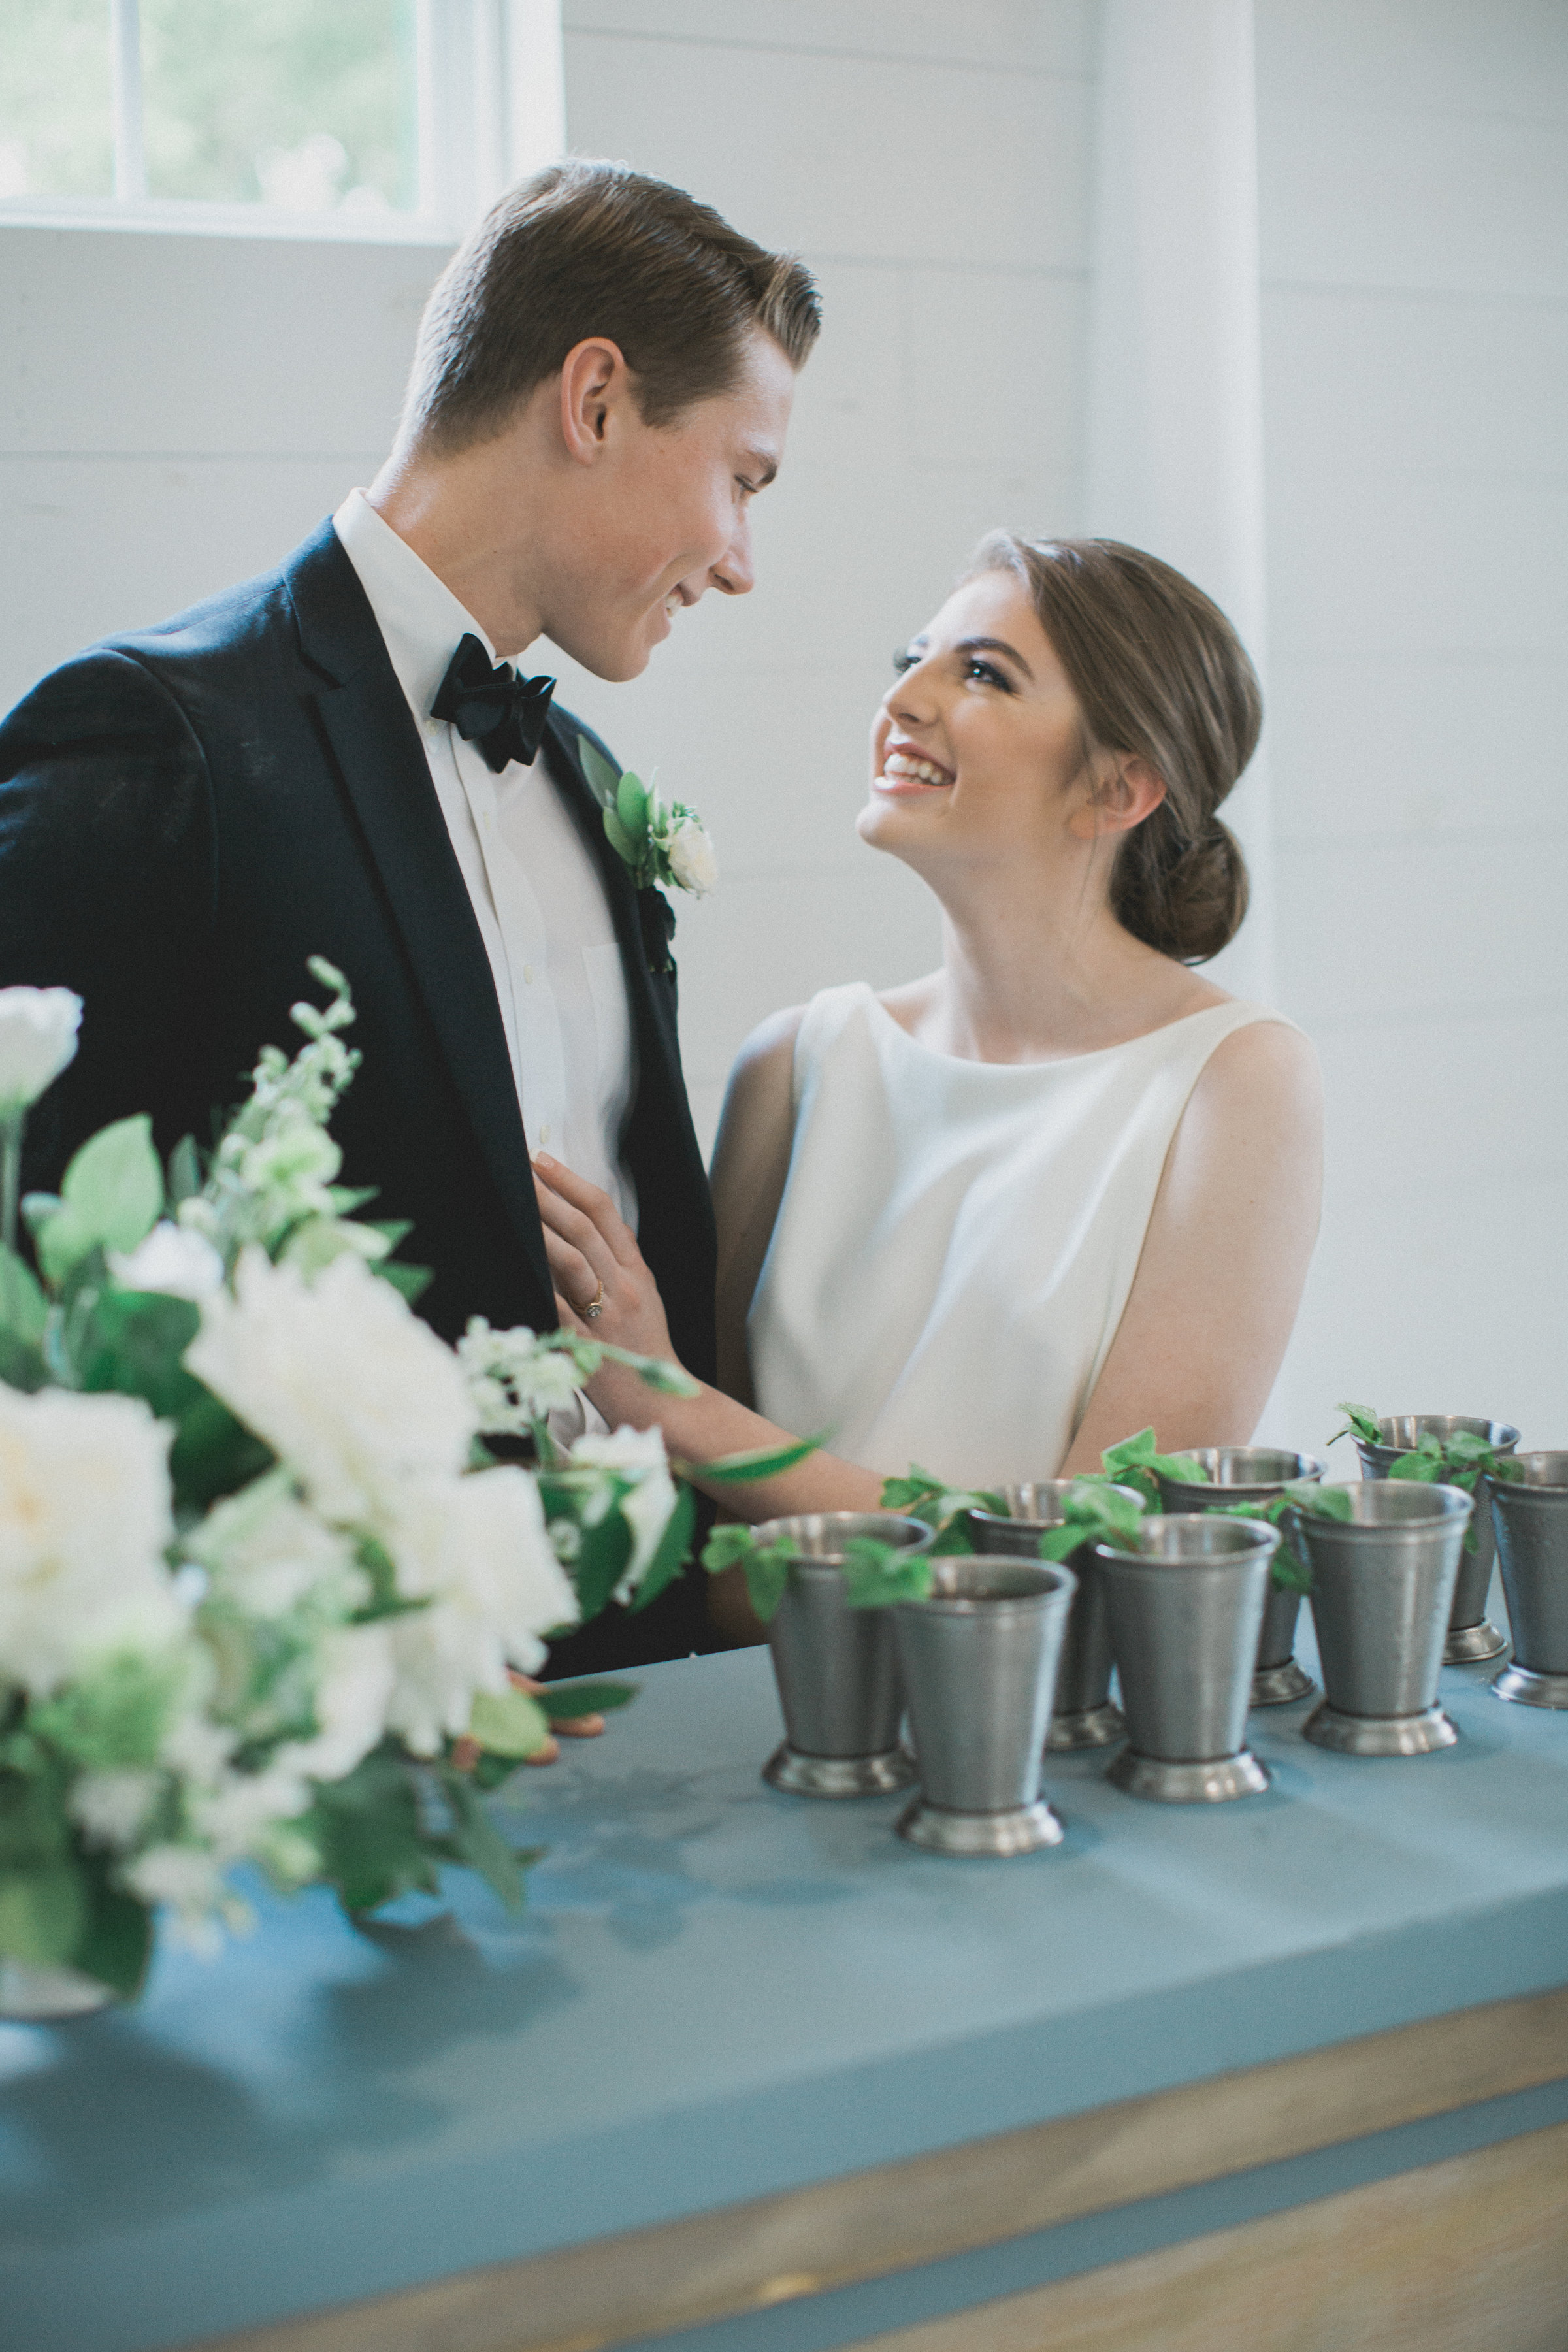 Wedding Signature Cocktail Mint Juleps | Southern Summer White Barn Wedding in Dallas, TX